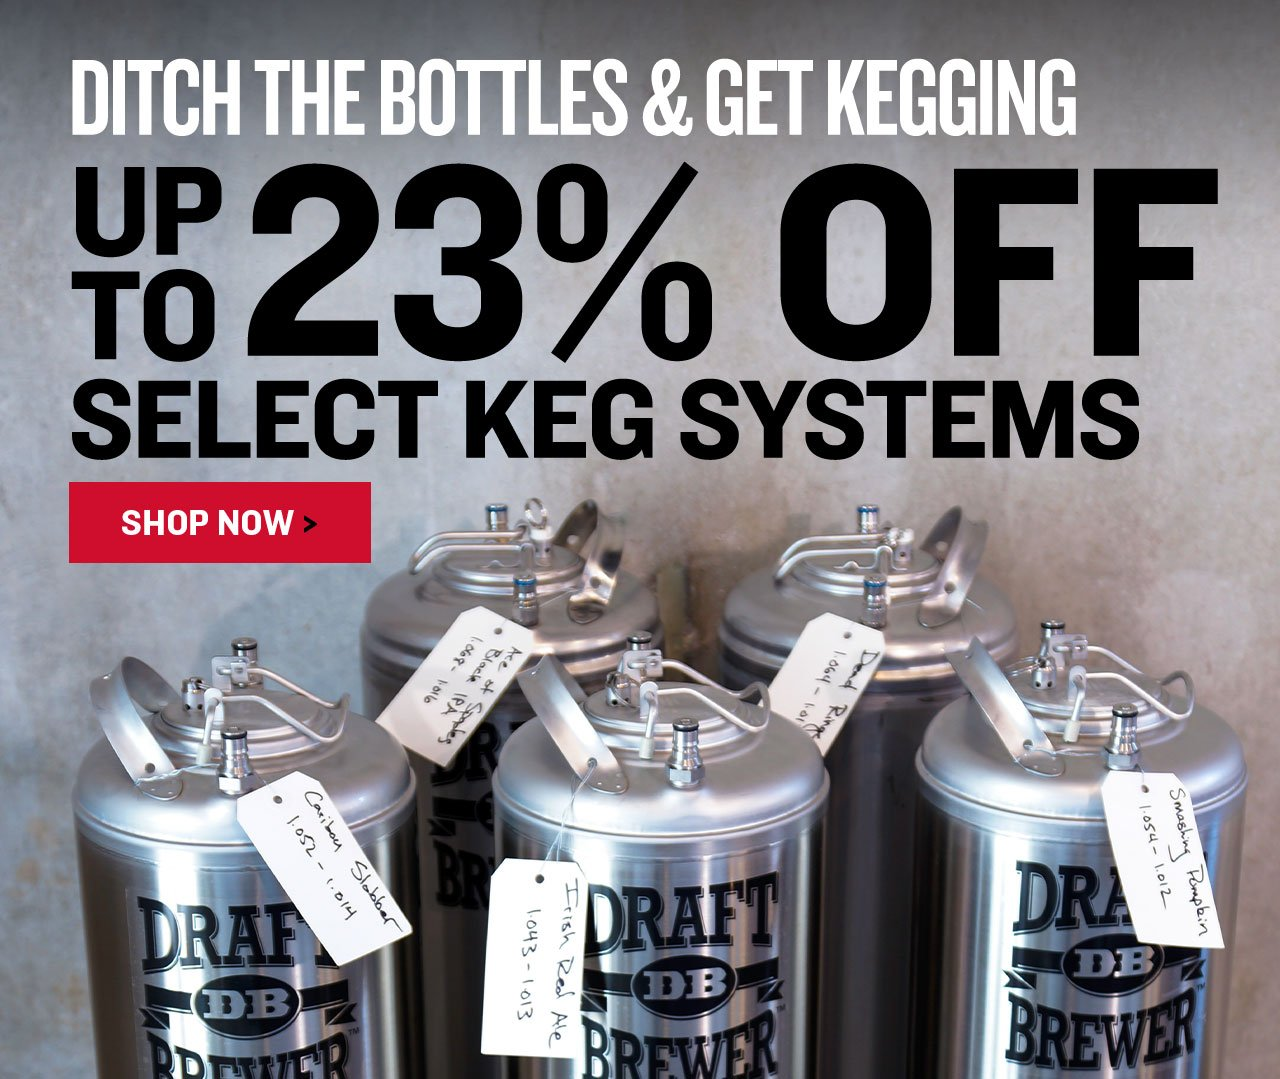 Up to 23% Off Select Keg Systems. No Promo Code Required.